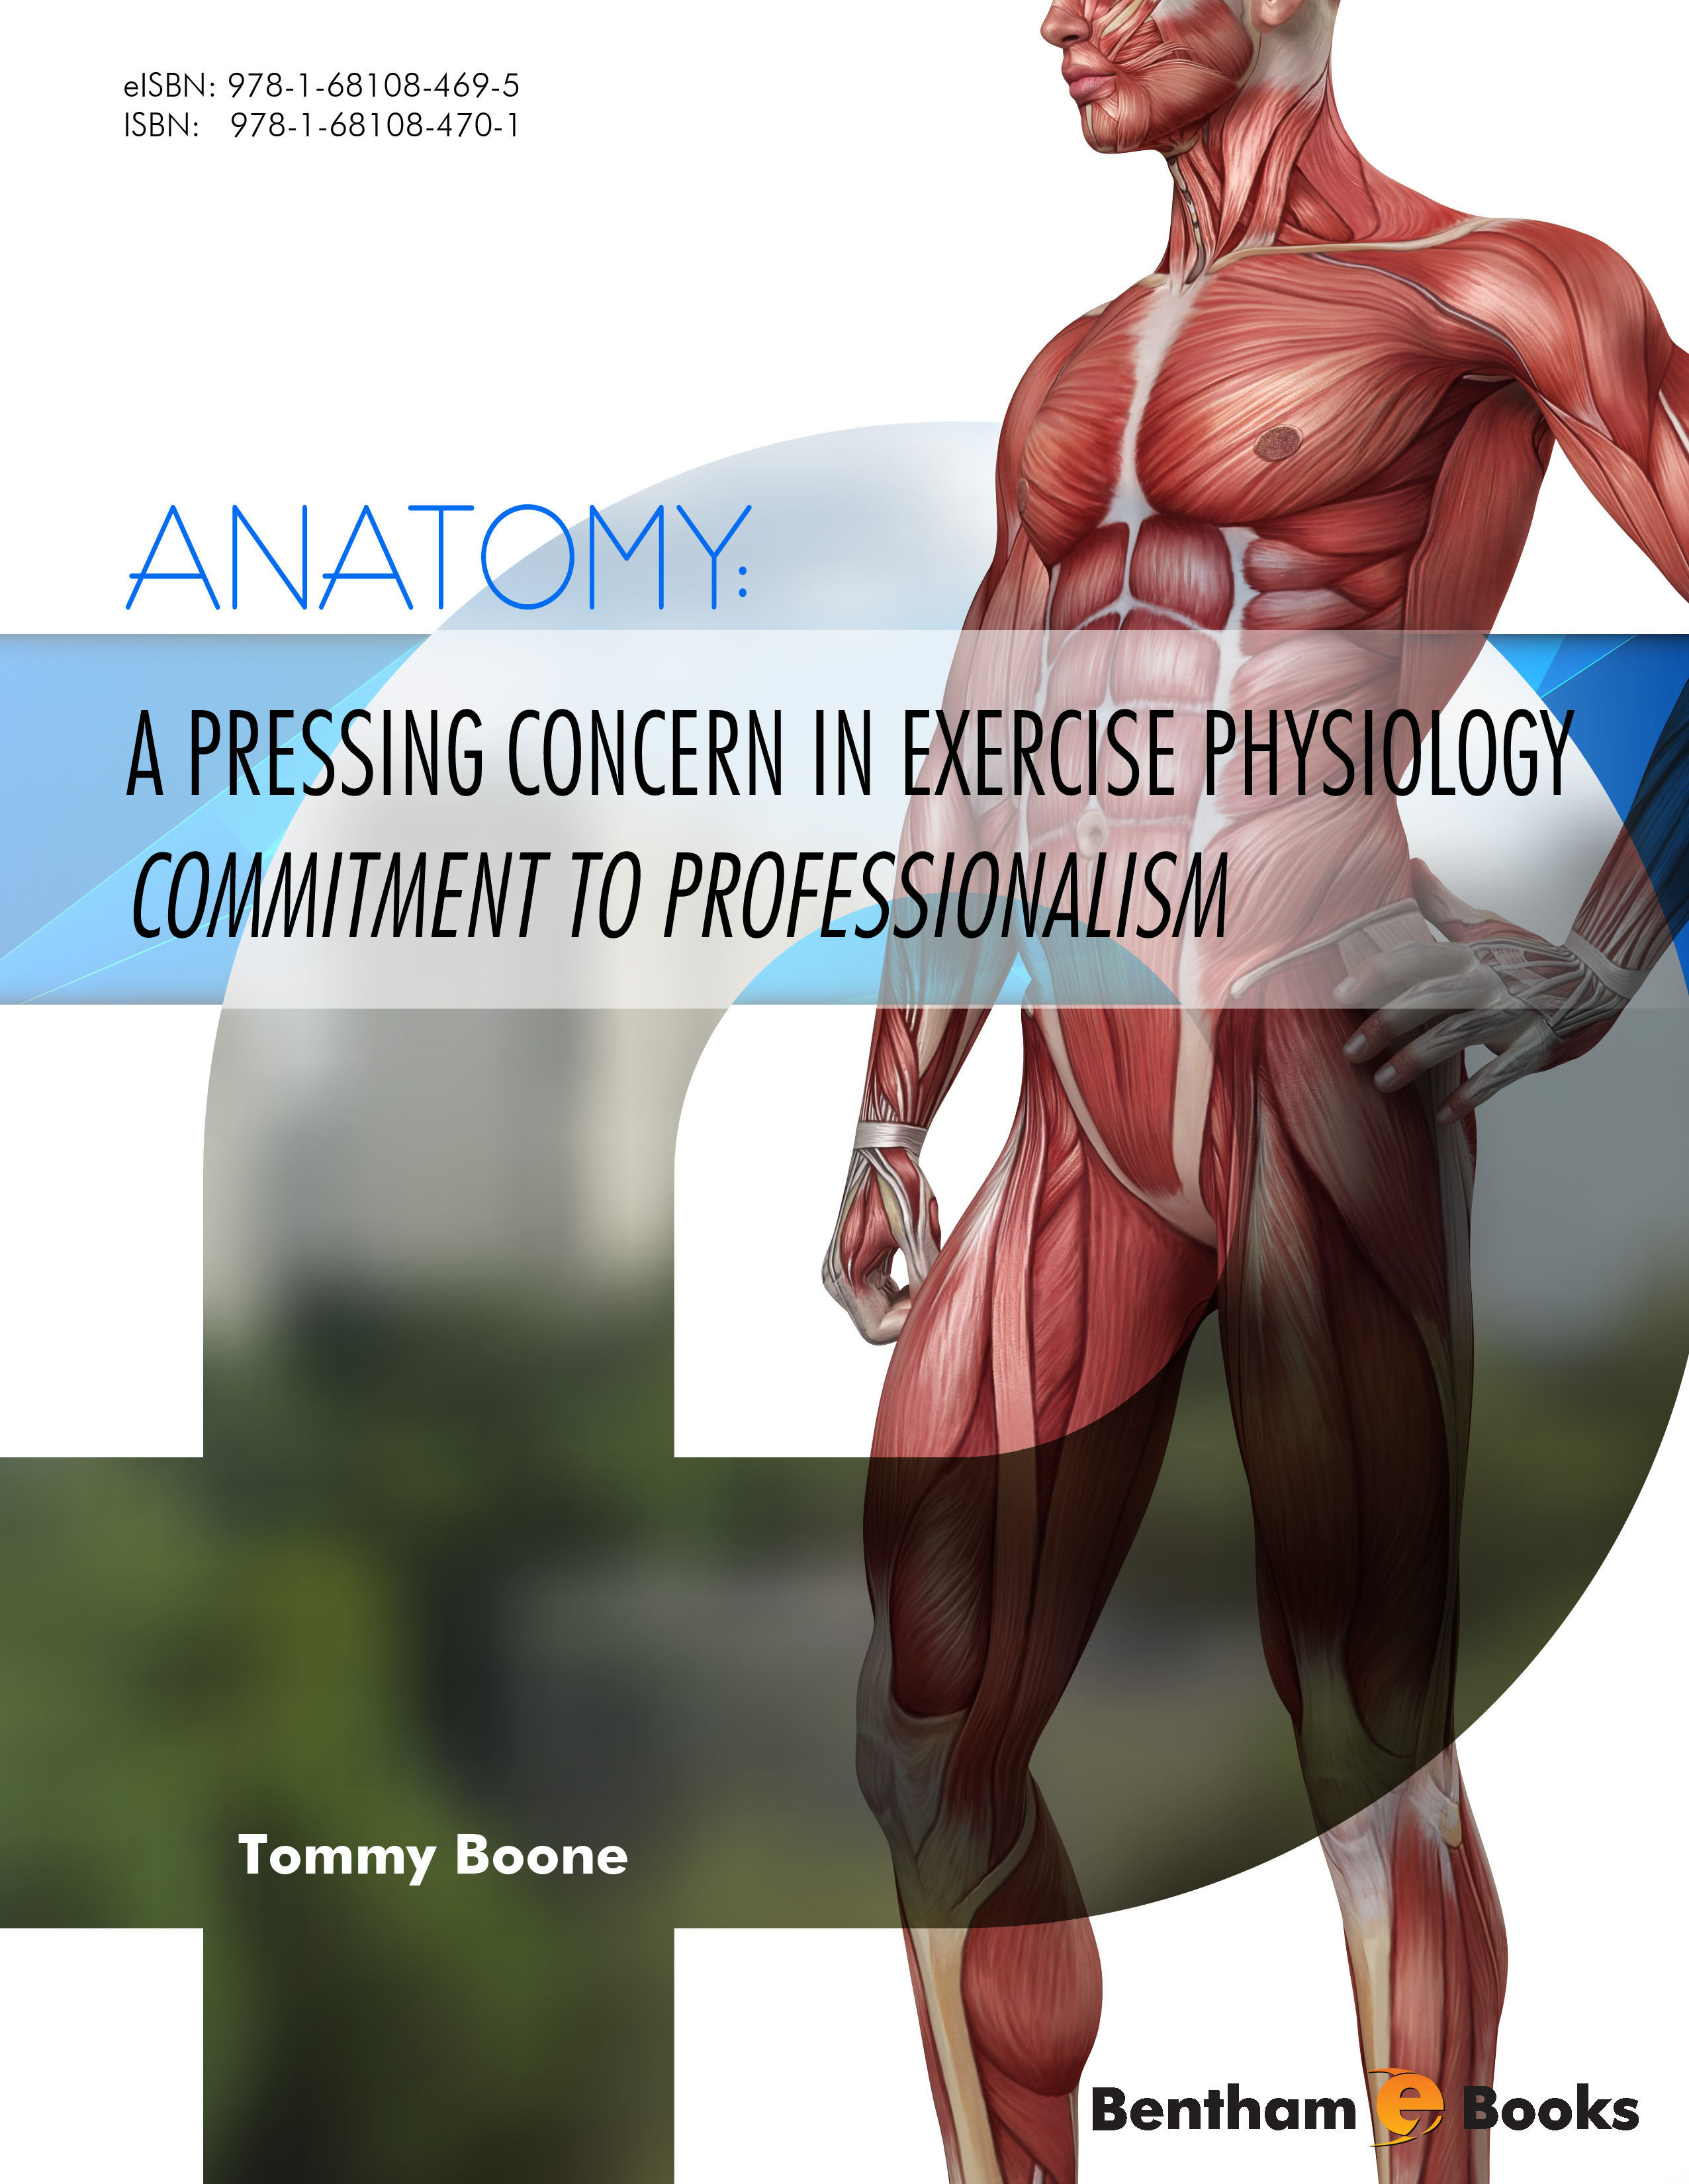 Anatomy: A Pressing Concern in Exercise Physiology